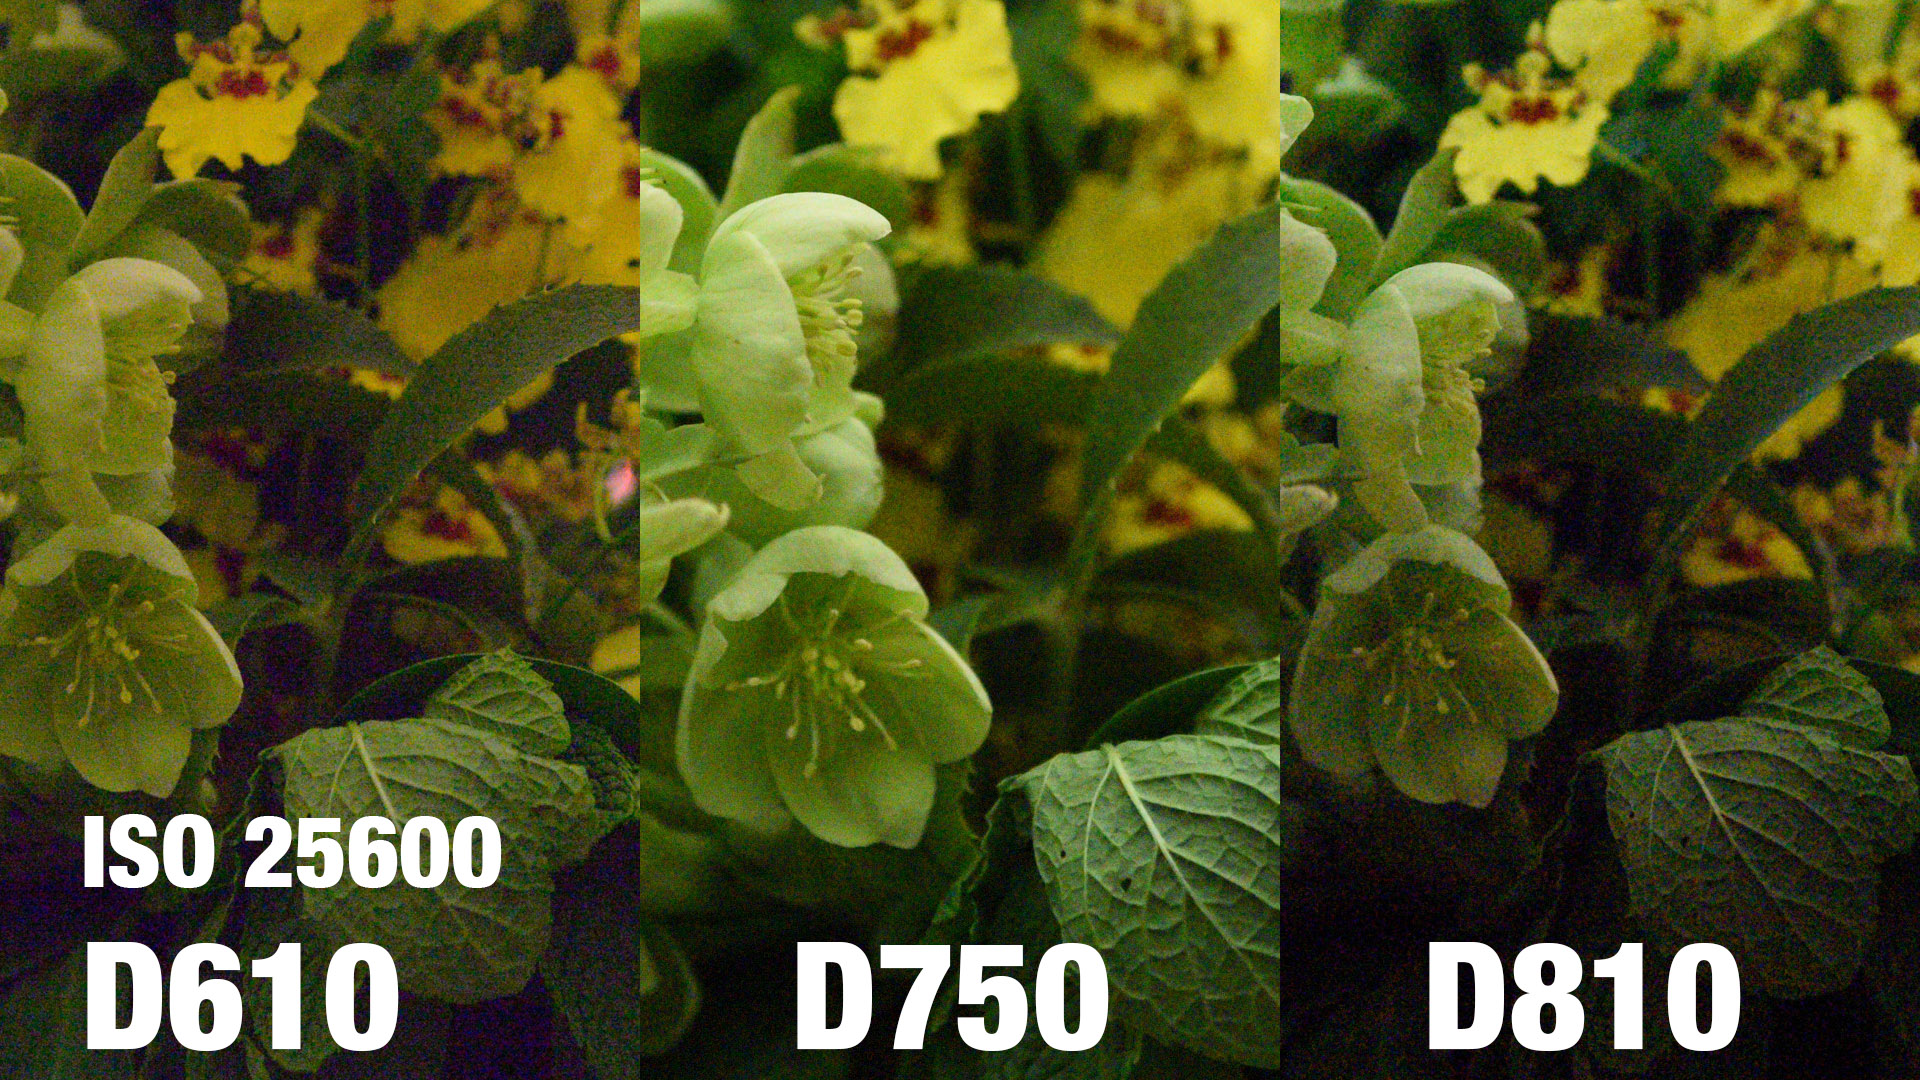 High ISO comparison between the D610, D750 and D810